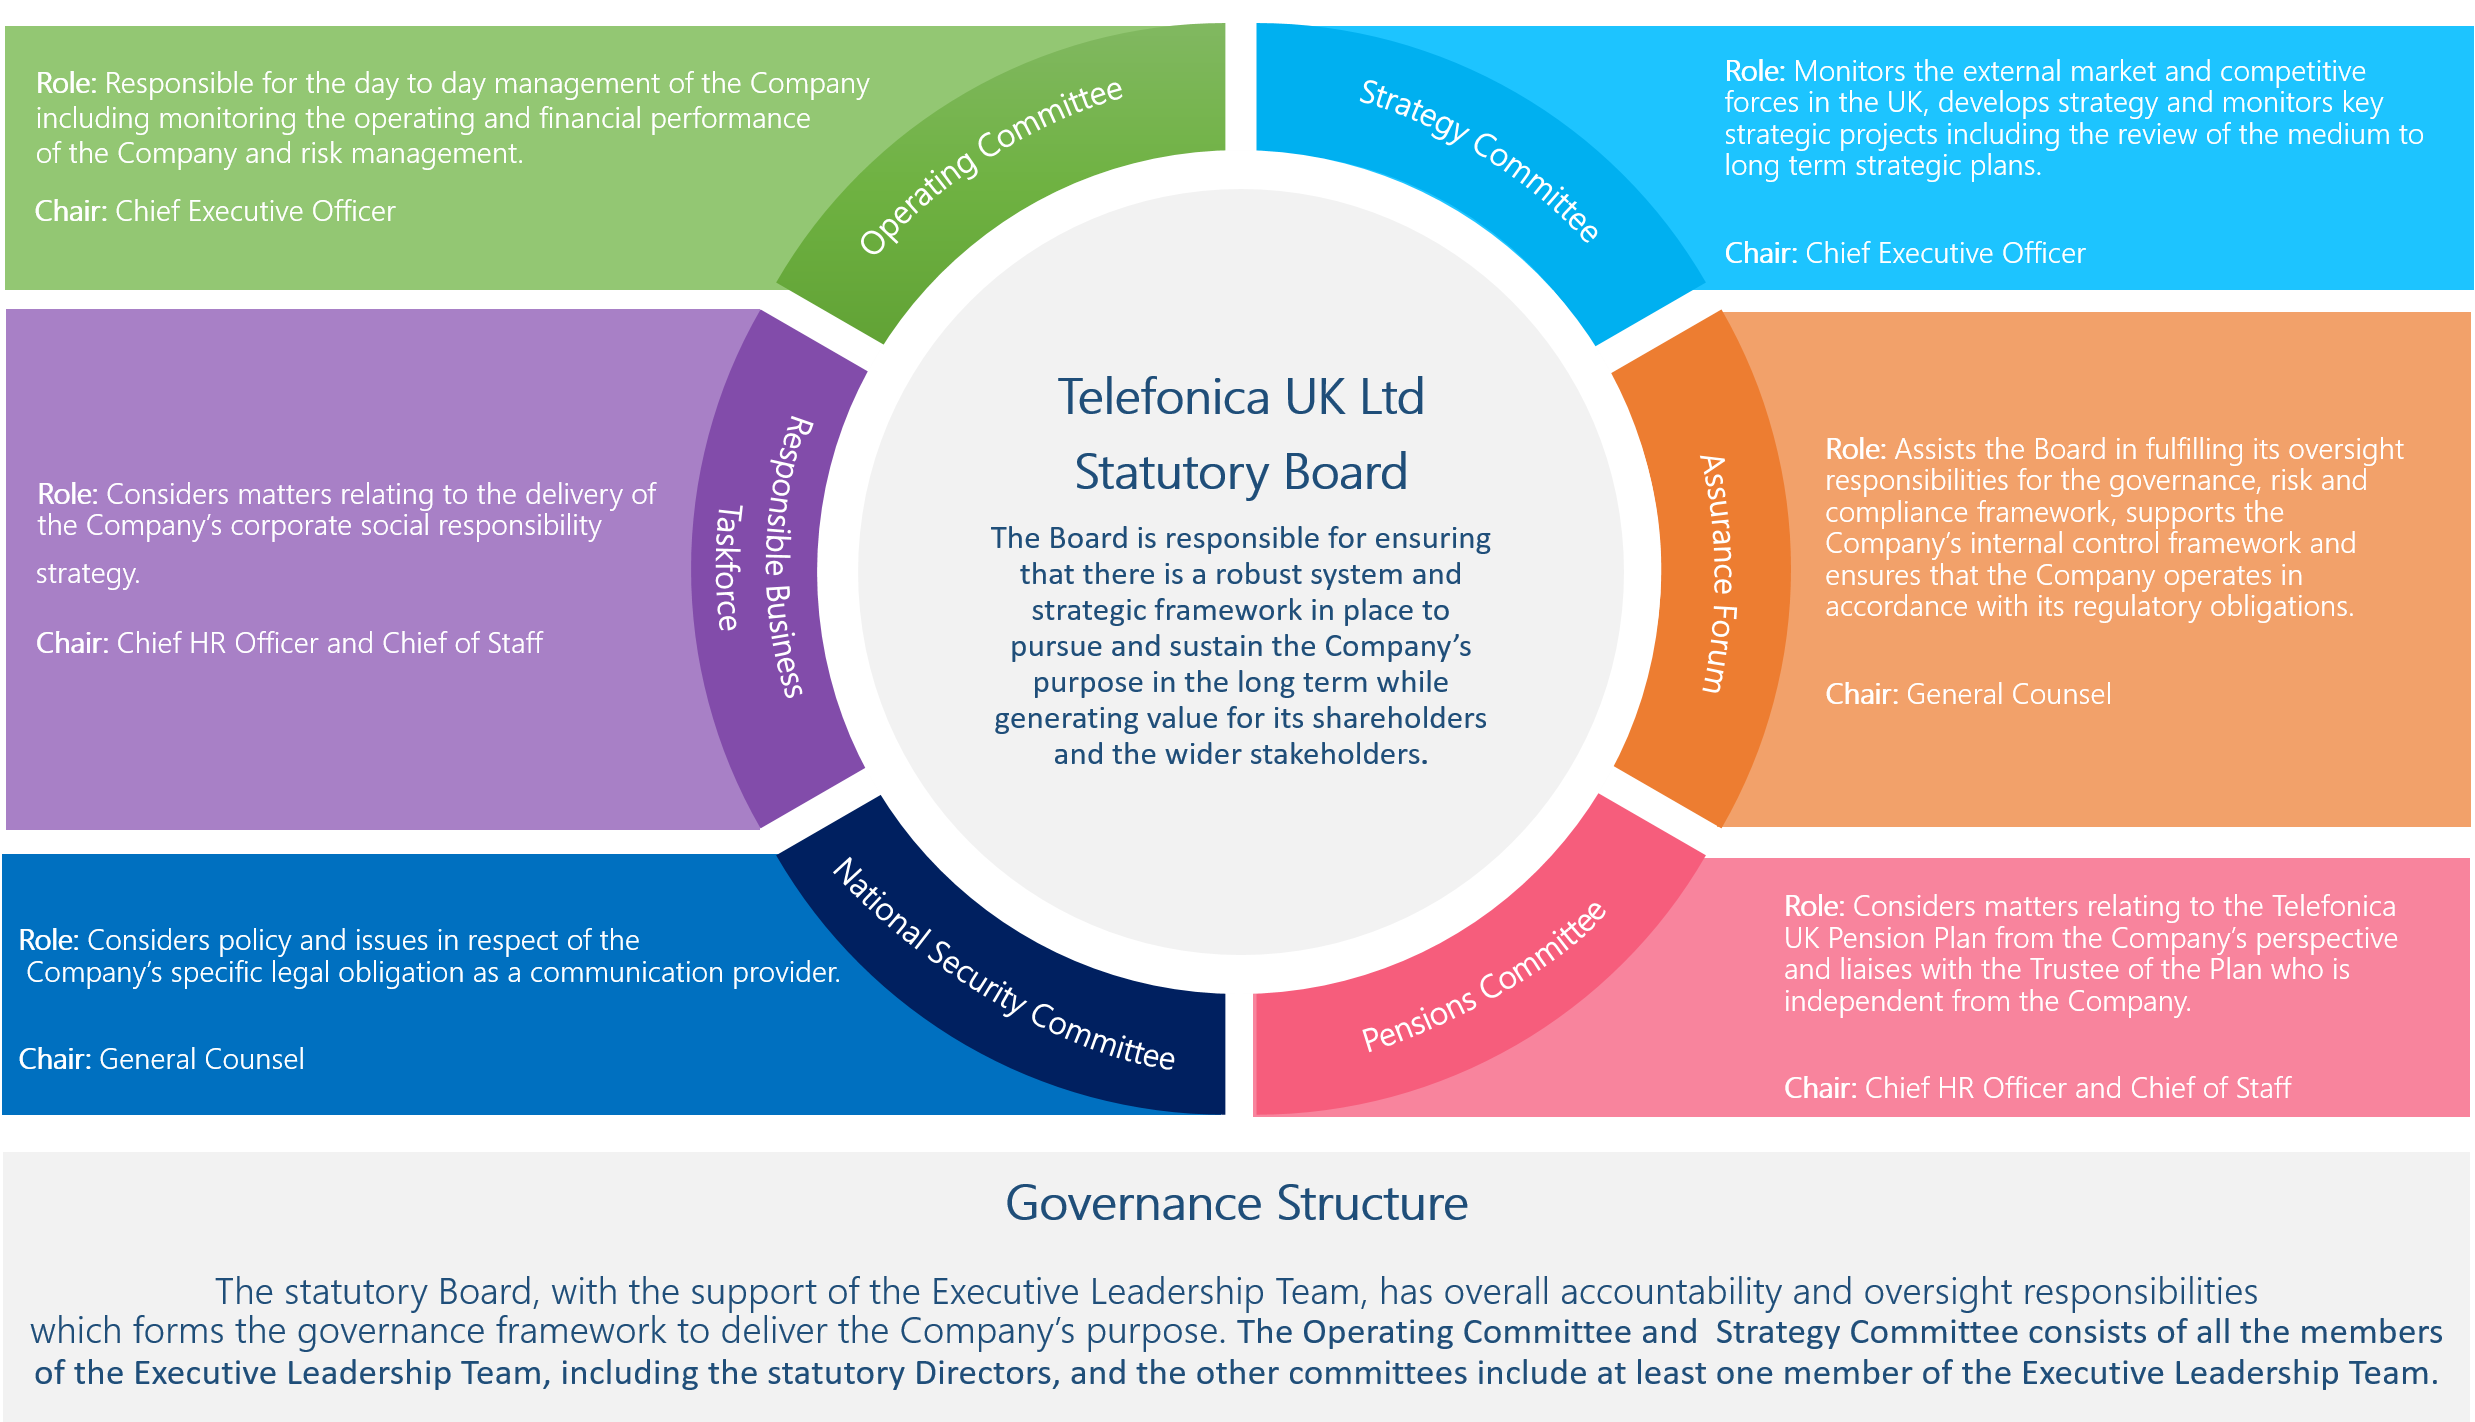 Diagram illustrating the Telefonica UK Ltd Statutory Board